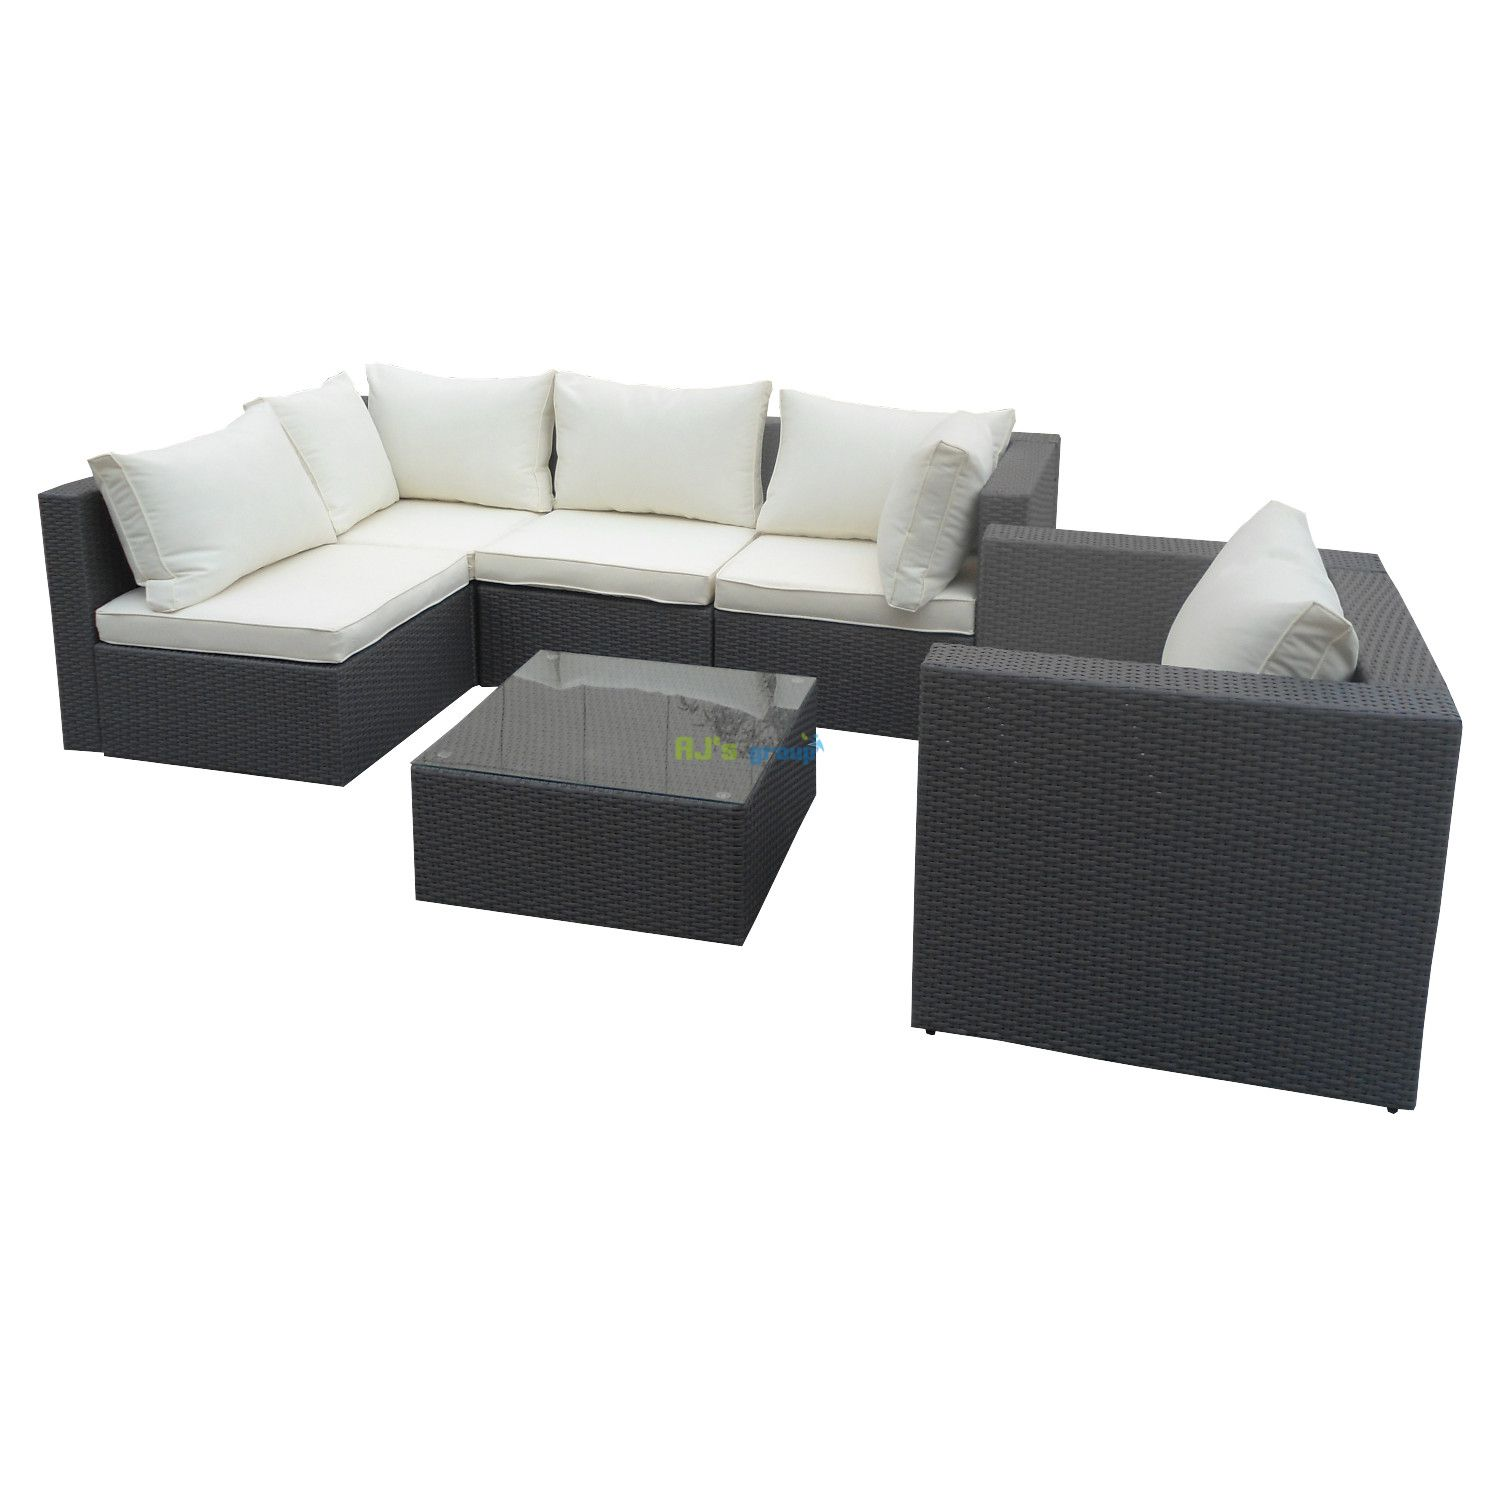 rattan wicker garden patio set jamaica mixed brown outdoor. Black Bedroom Furniture Sets. Home Design Ideas